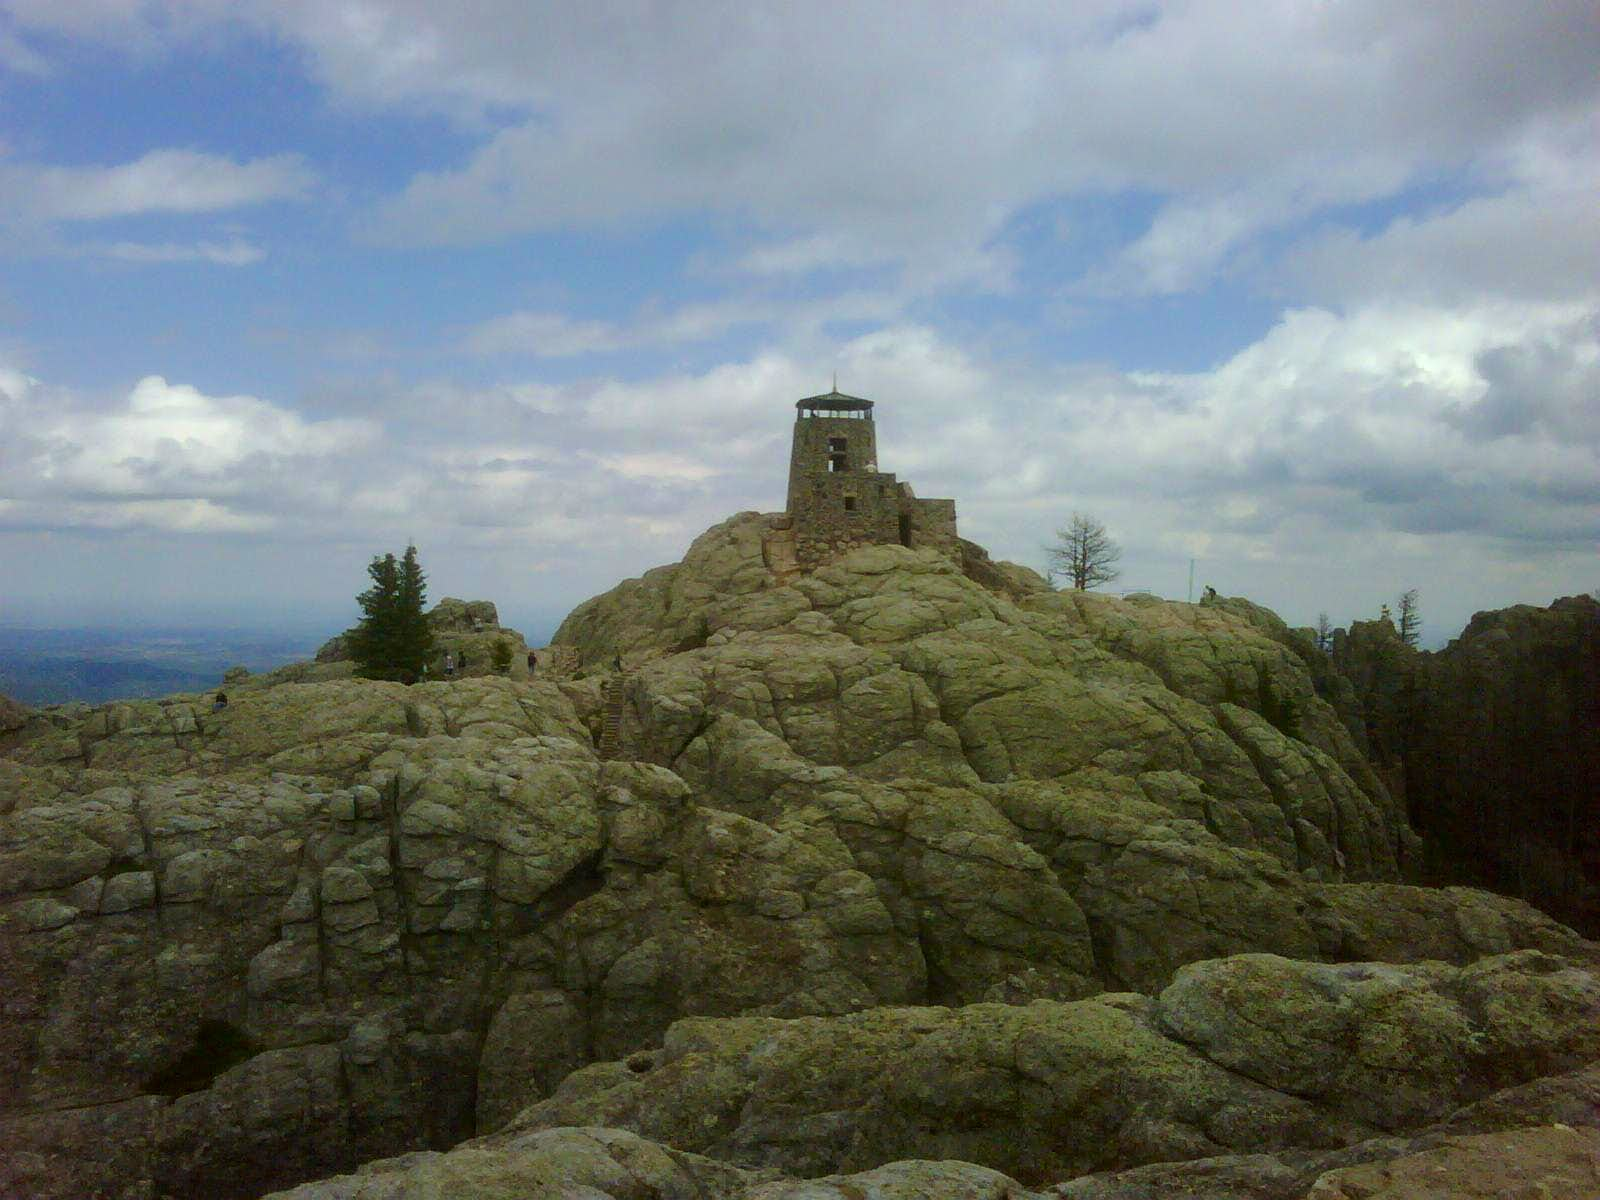 Harney Peak: Loop by Trails 4, 3, and 9 - 2010